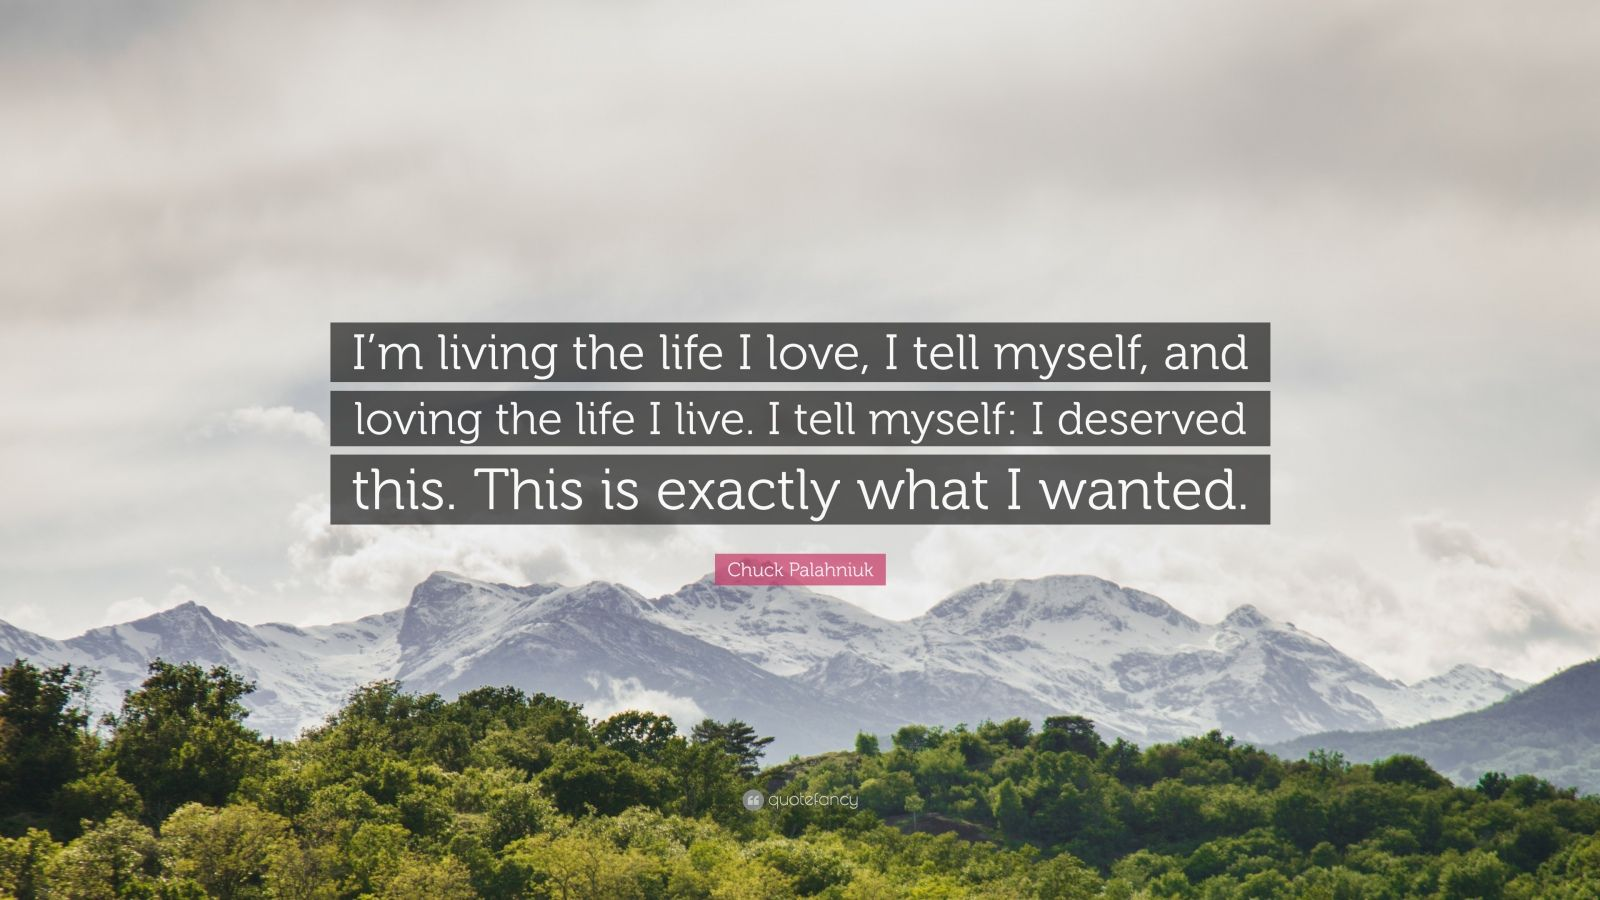 chuck palahniuk quotes quotefancy chuck palahniuk quote i m living the life i love i tell